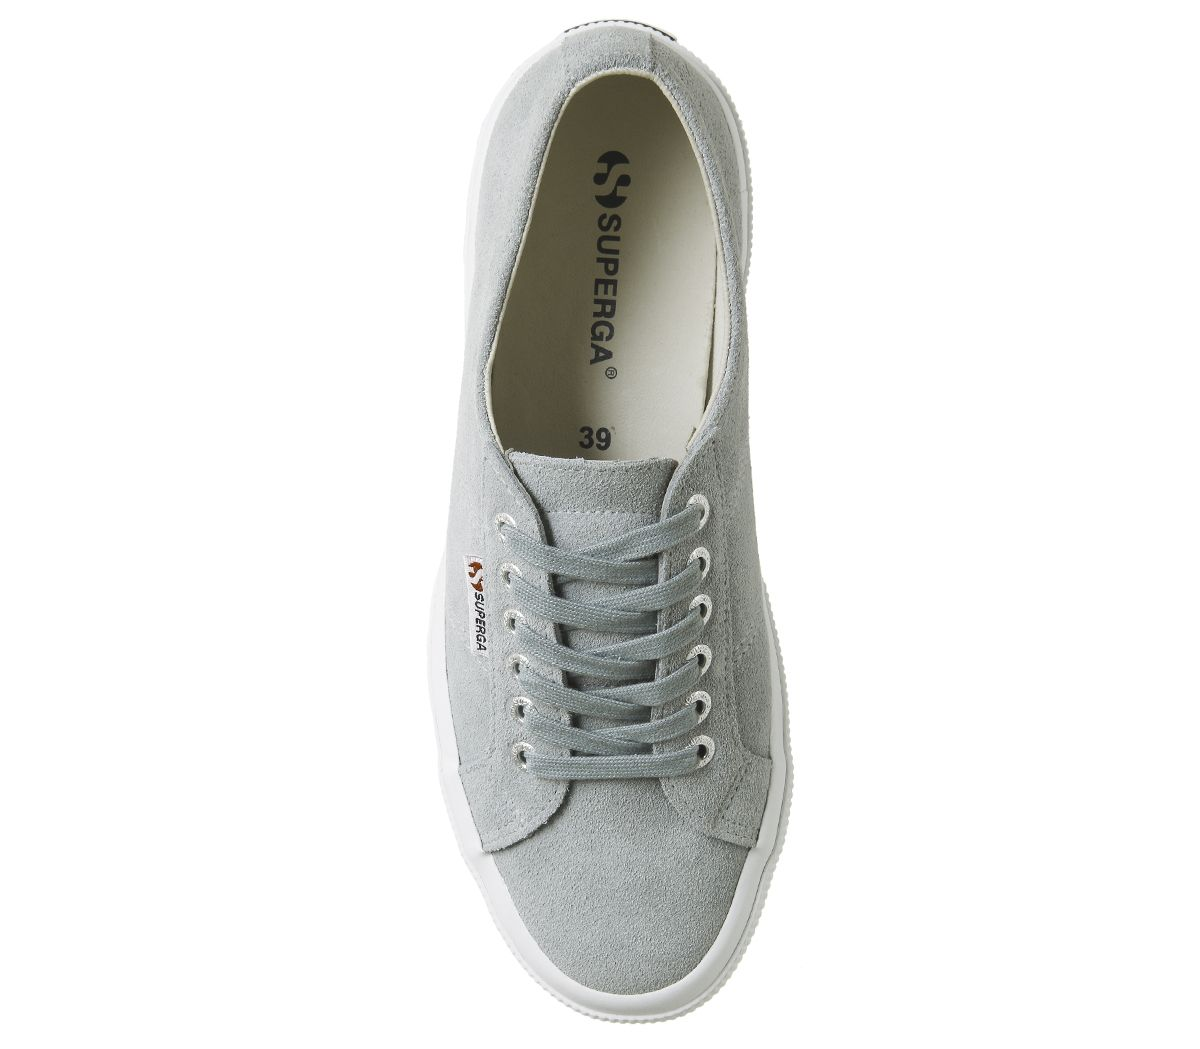 d48e84fa11d Superga 2750 Trainers Light Grey Suede - Hers trainers